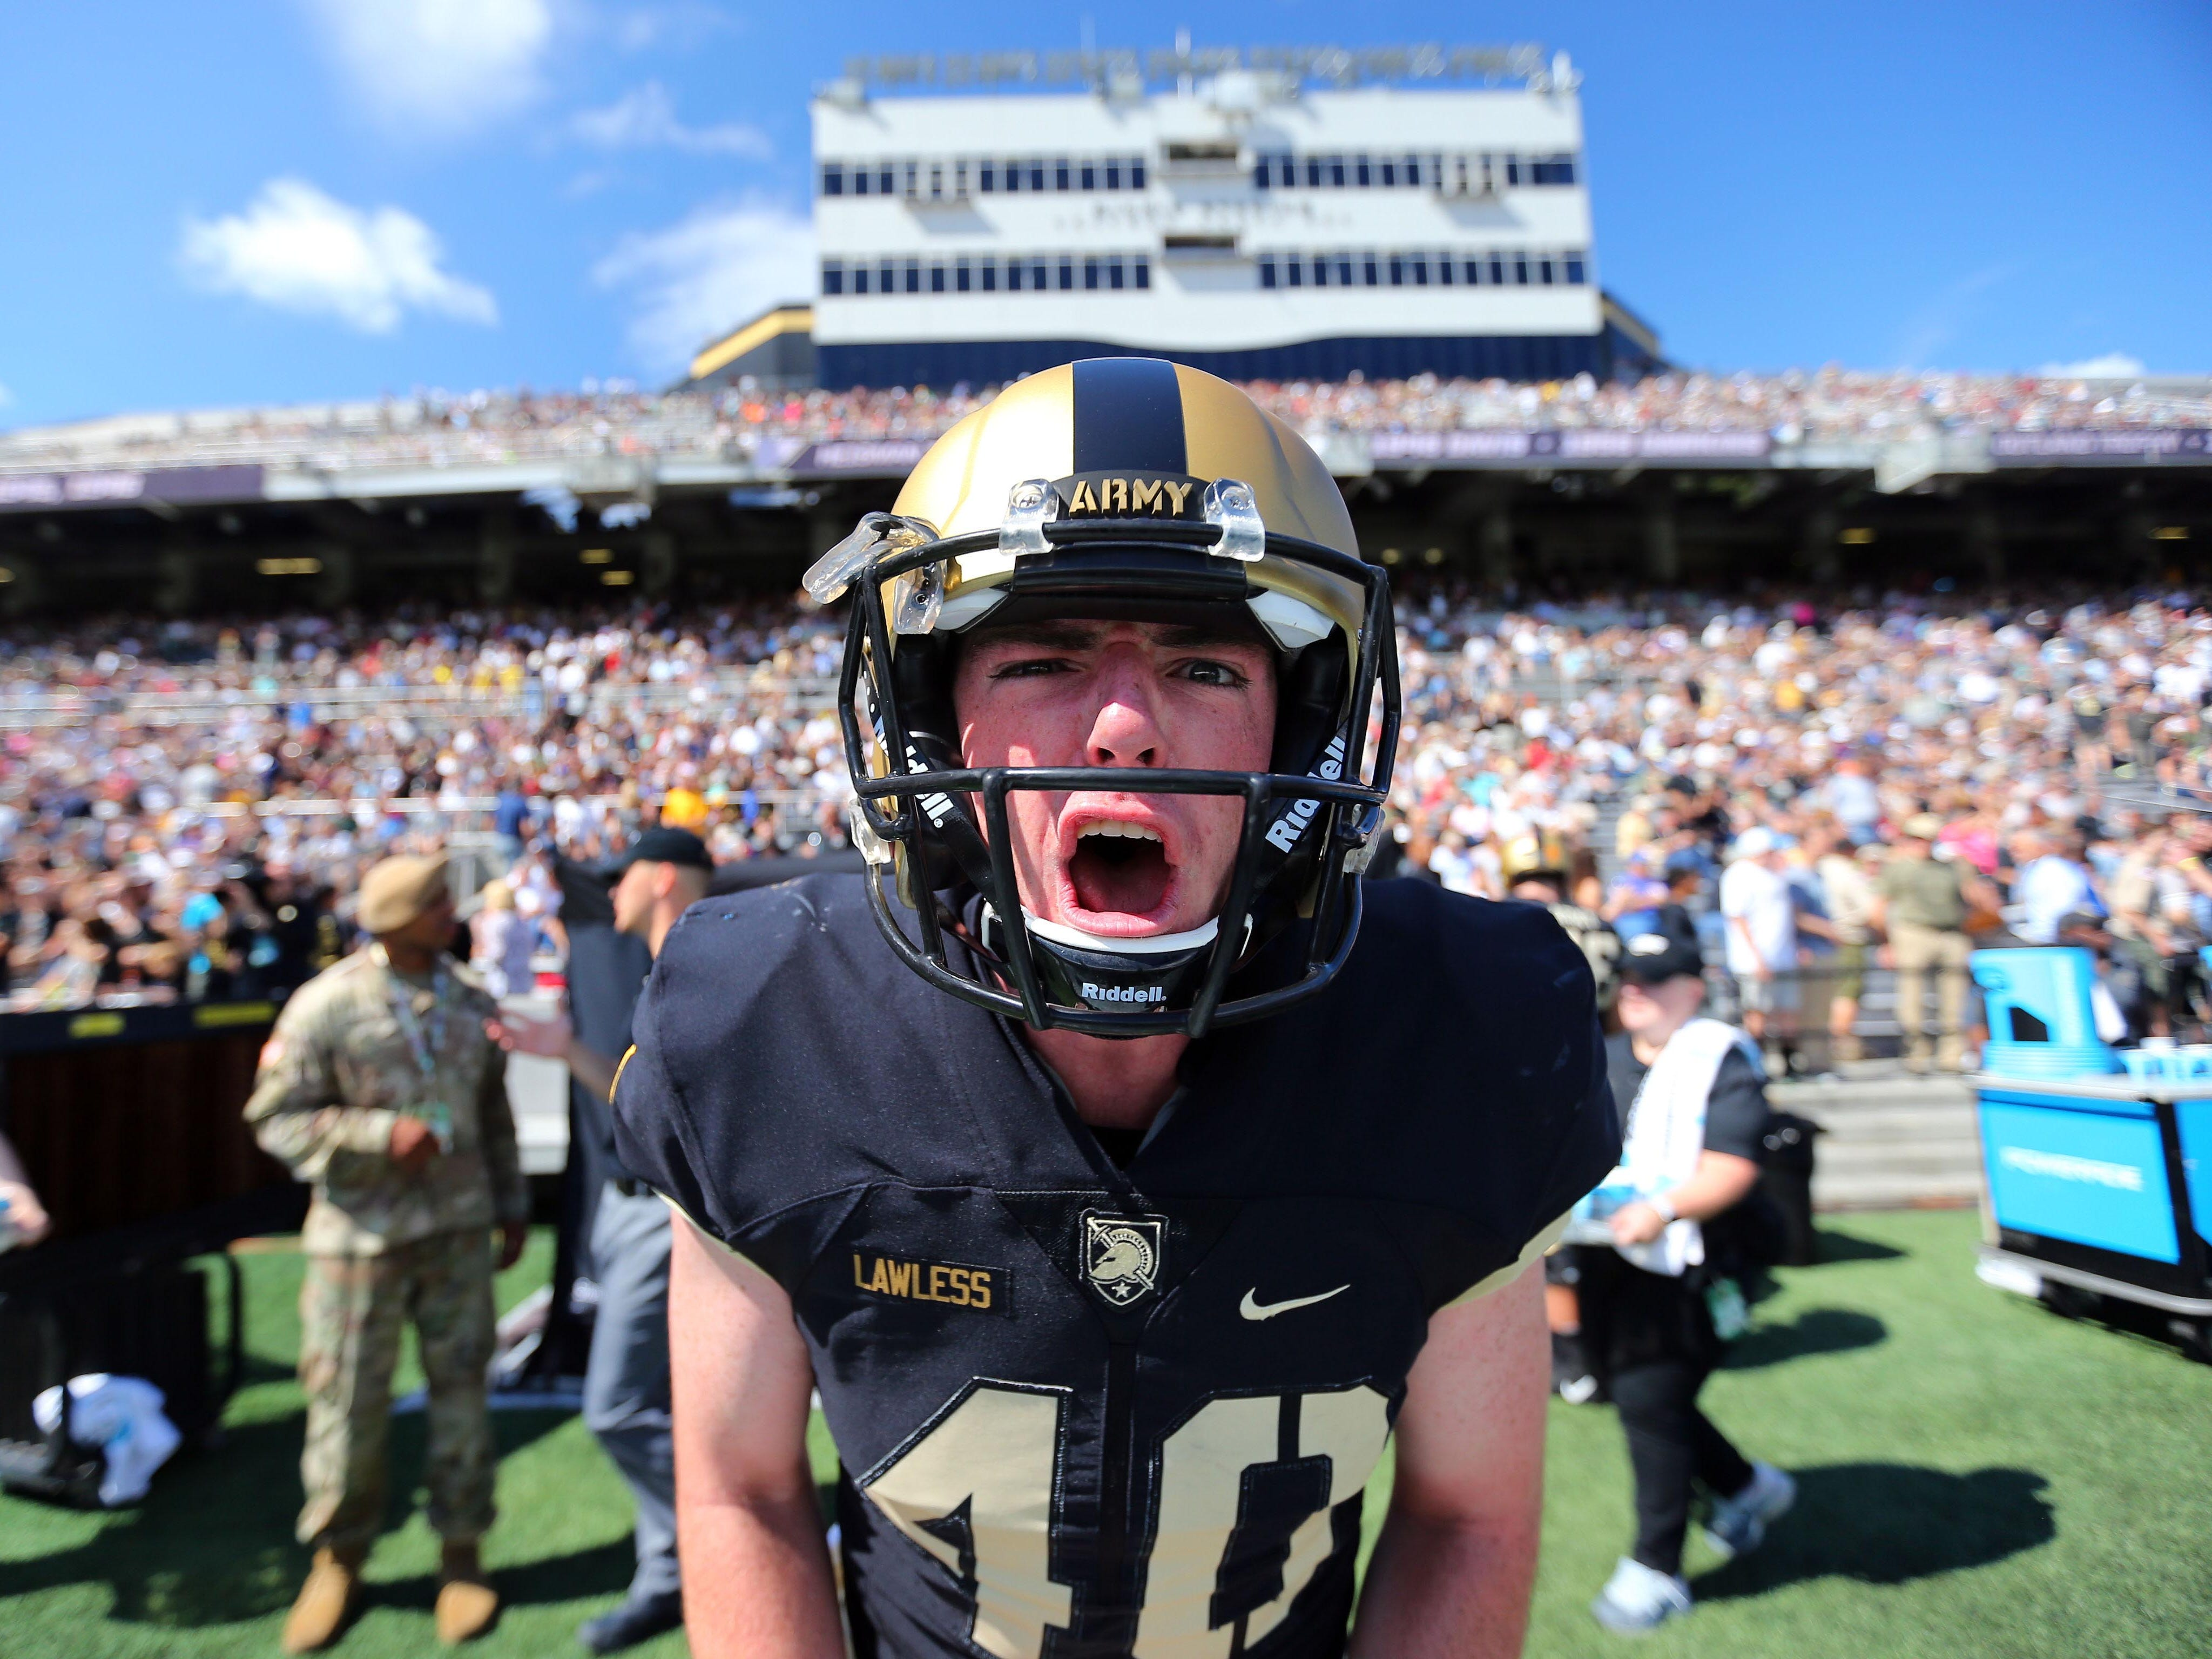 Army long snapper Paul Lawless (40) lets out a roar before the Black Knights faced Hawaii at Michie Stadium.